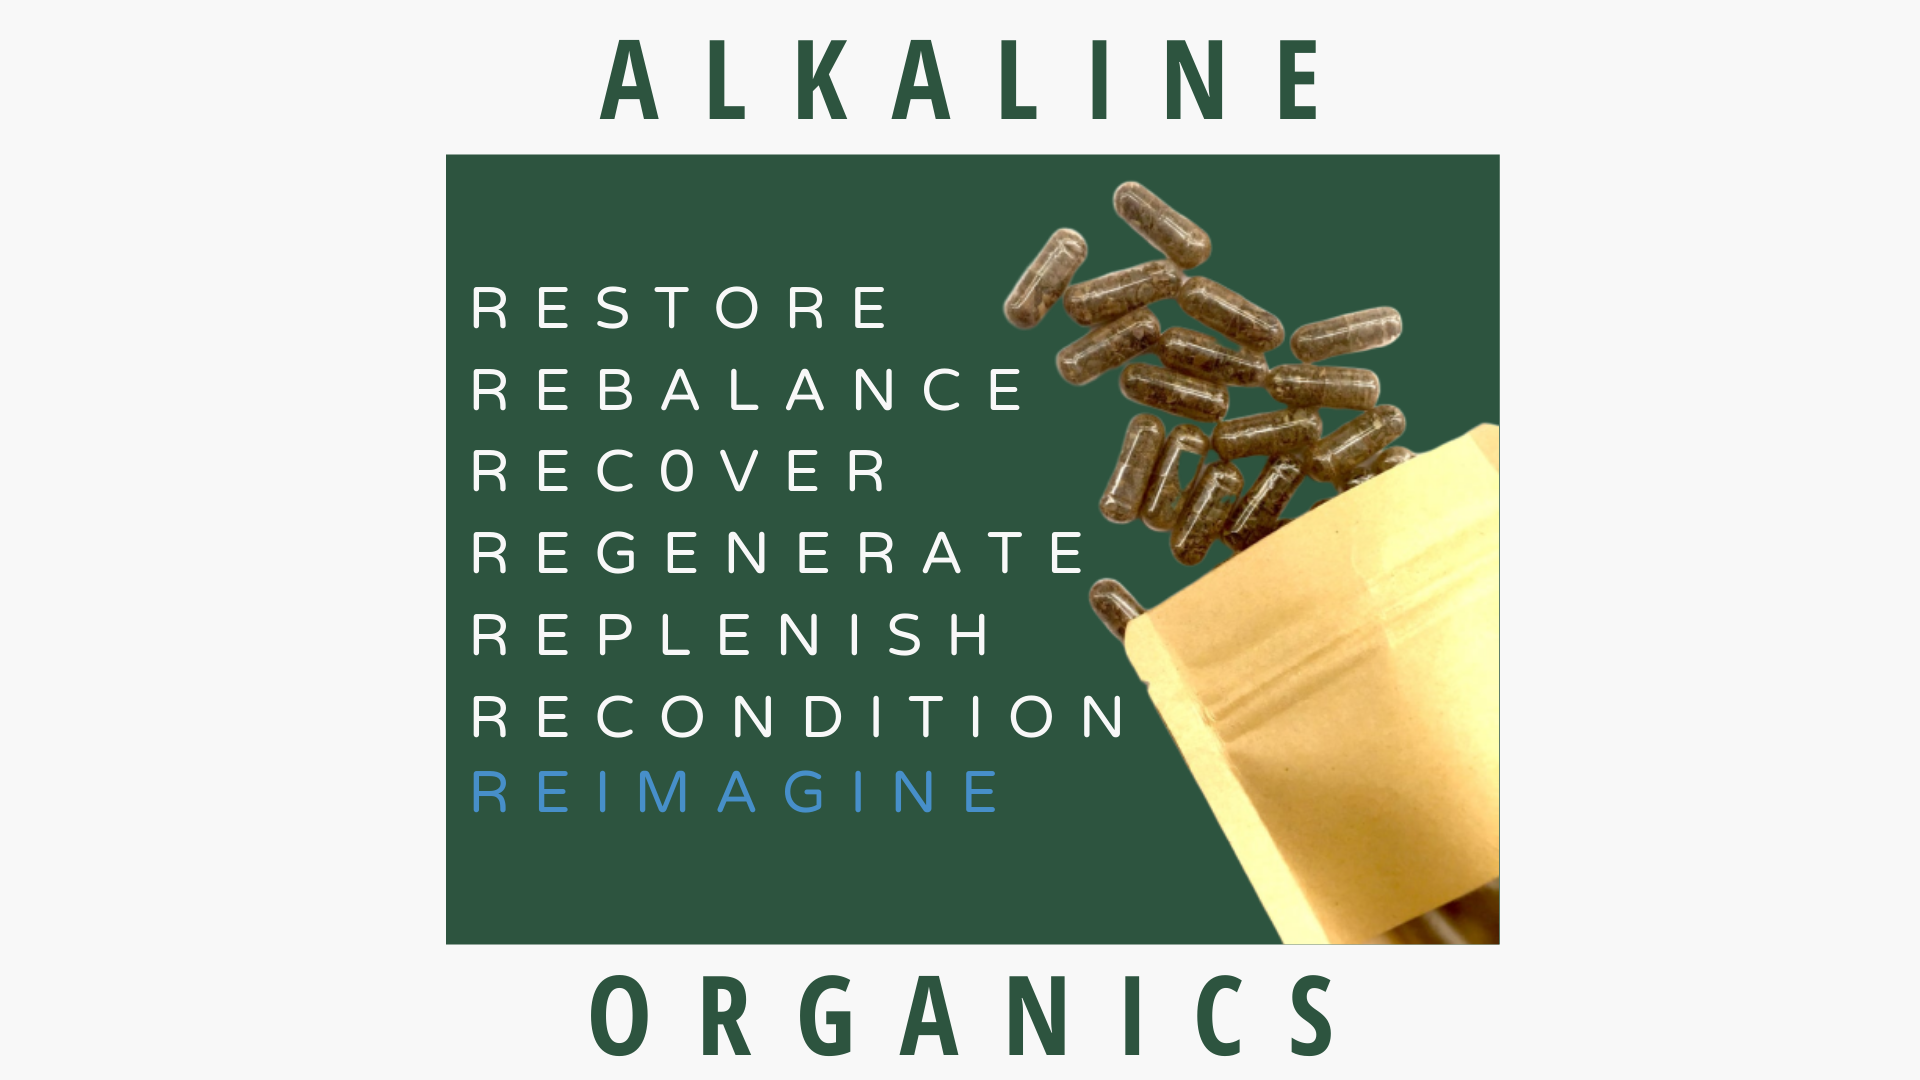 Dr. Sebi Approved All Natural Nutraceutical Grade Herbal Formulas From @AlkalineOrganics